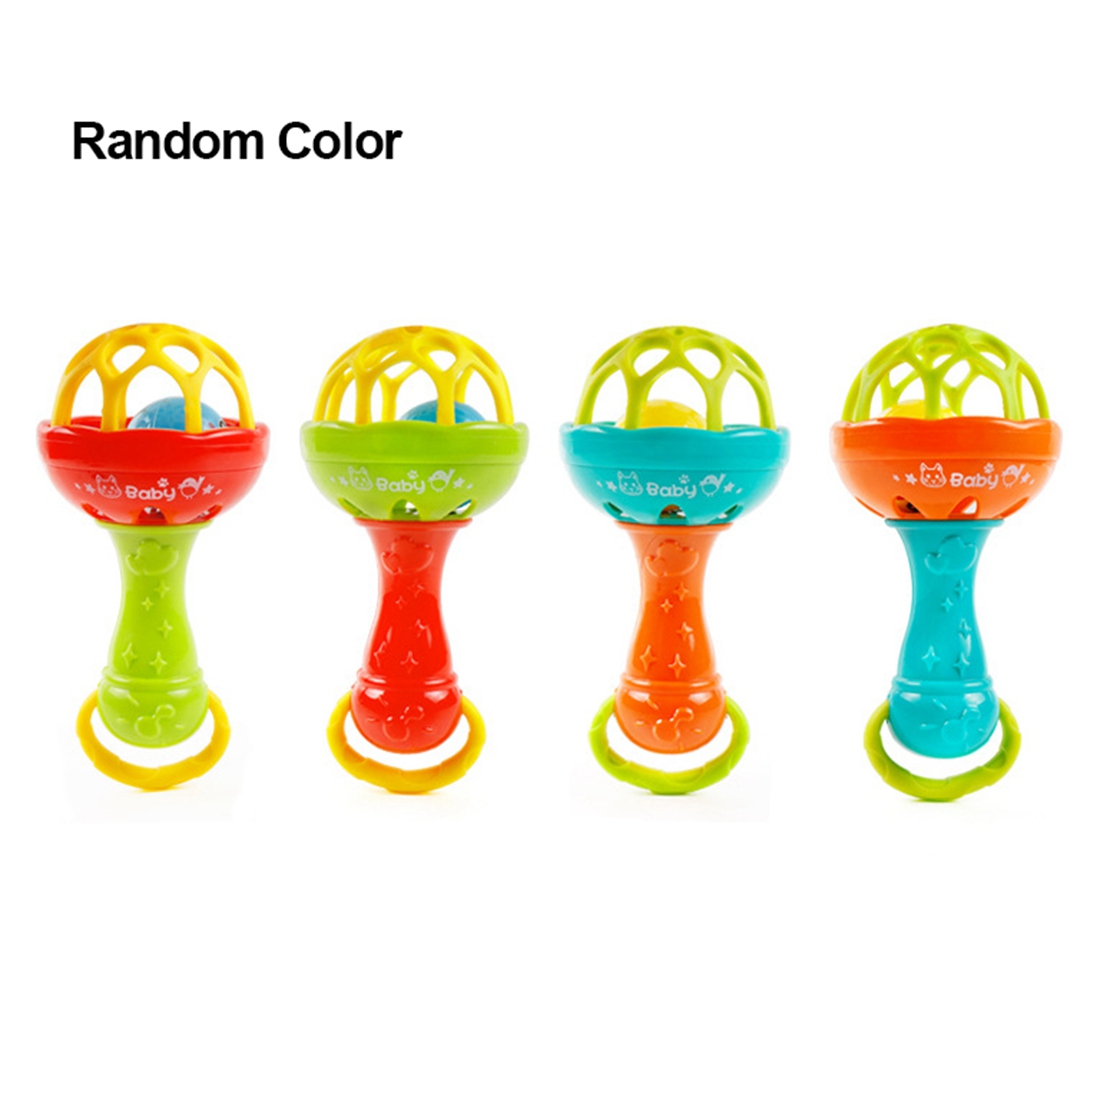 LCLL-Fun Games Baby Soft Rubber Teether Rattle Rod Multi-functional Baby Rattle Stick With Teether Baby Hand Holding Toy